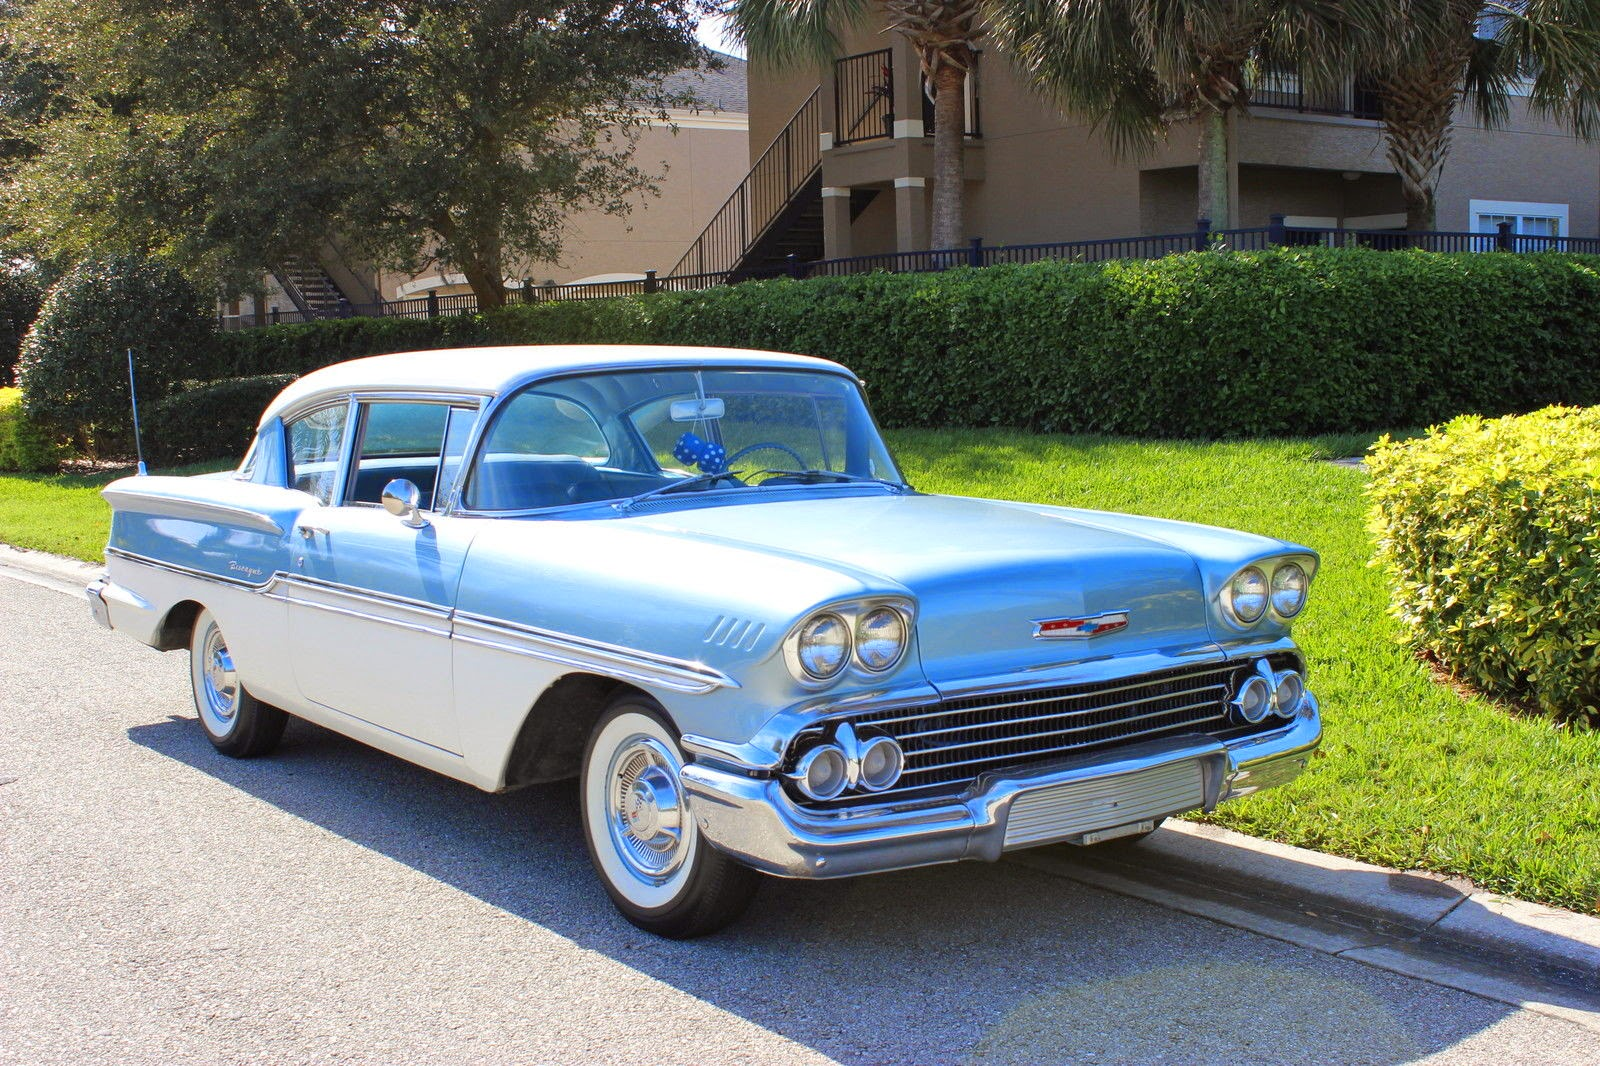 All Chevy 1960 chevrolet biscayne 2 door : All American Classic Cars: 1958 Chevrolet Biscayne 2-Door Sedan